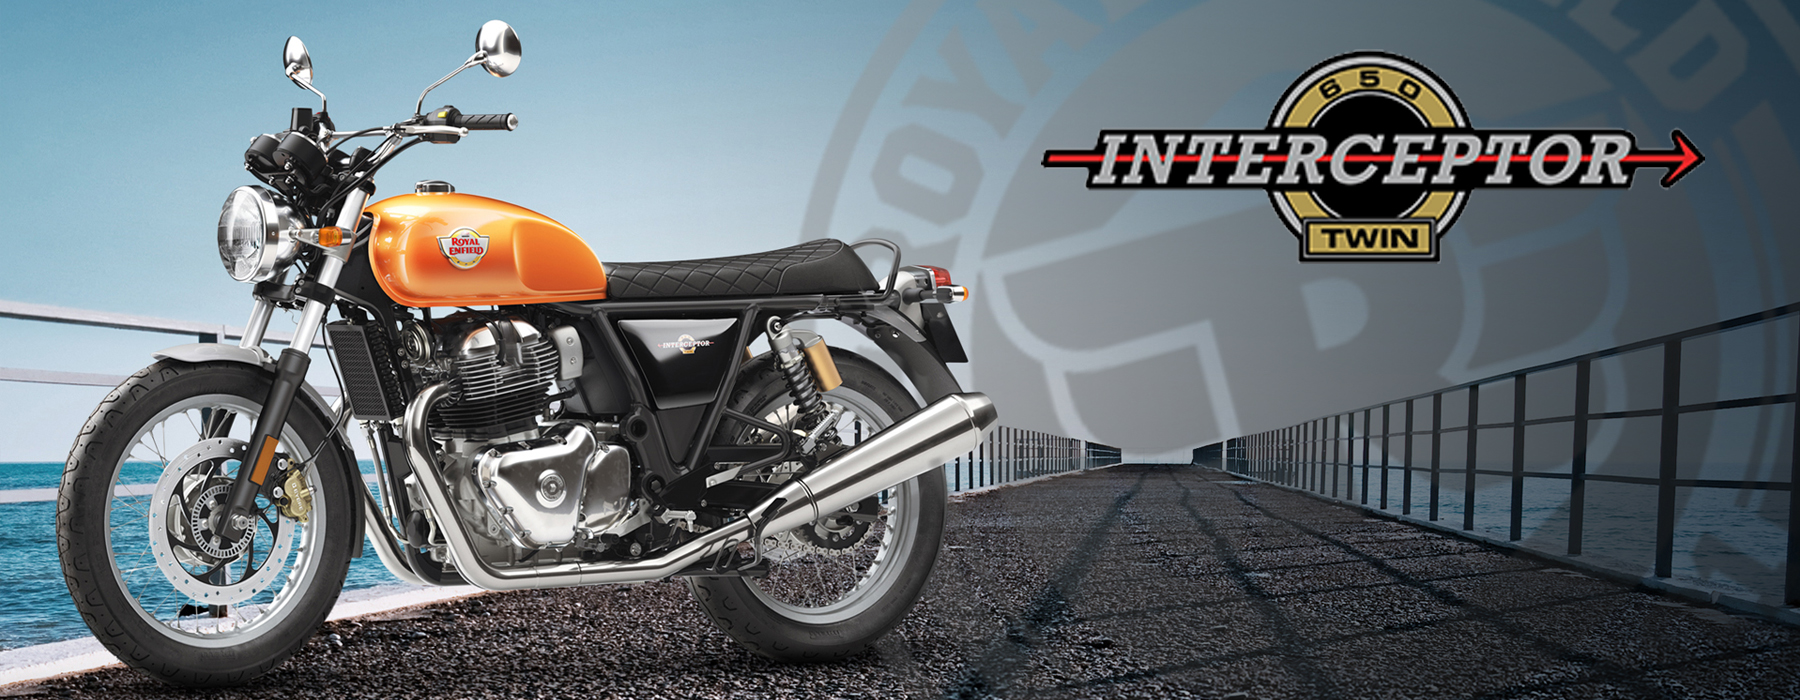 Interceptor INT 650 Twin